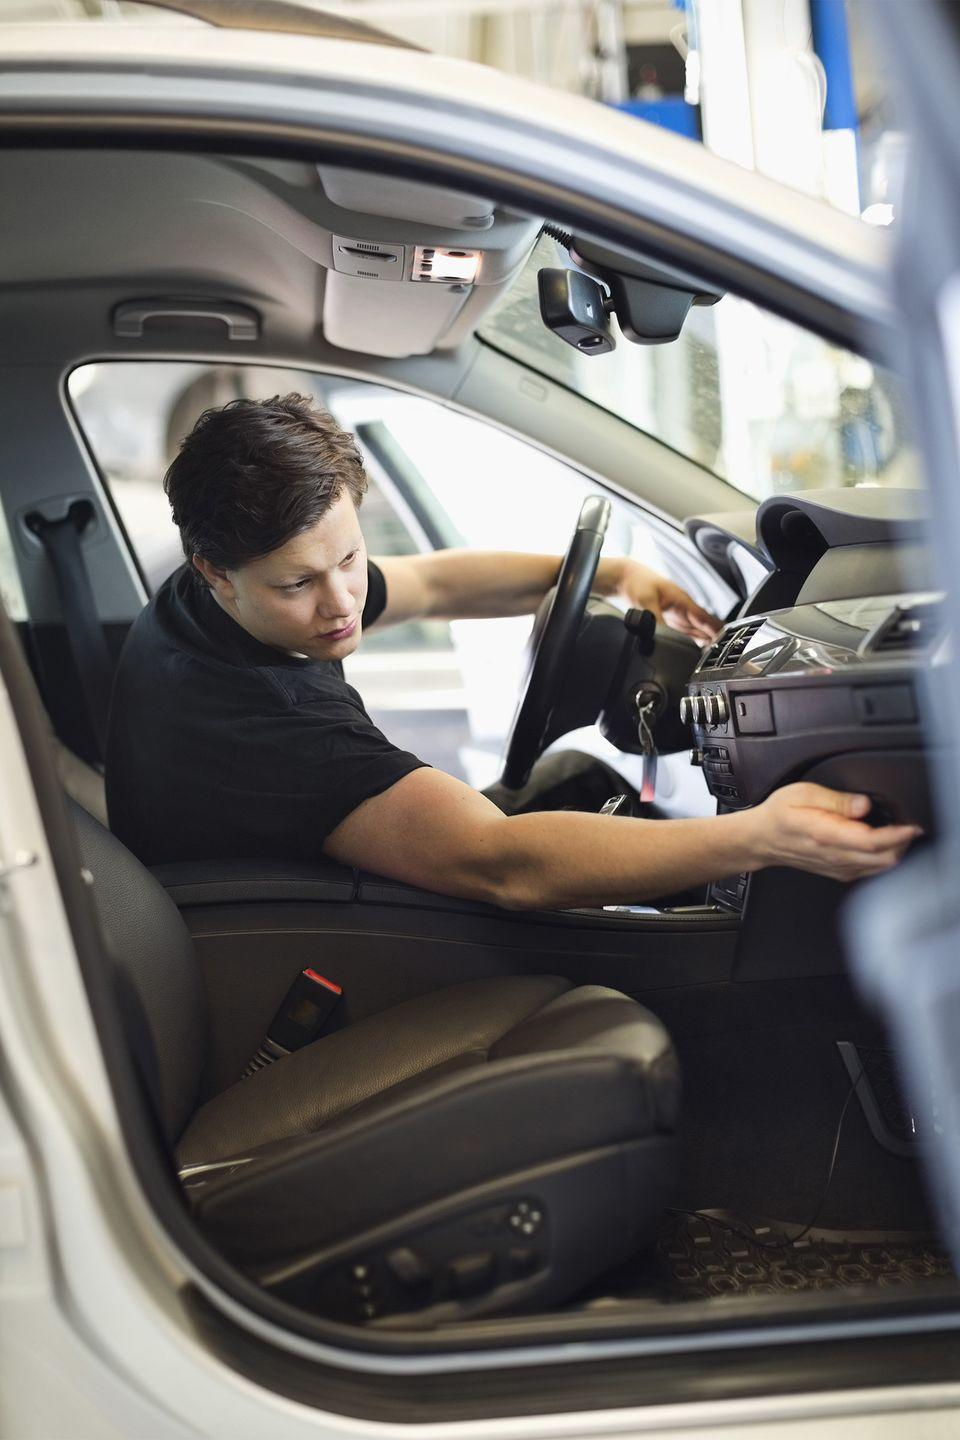 """<p>Stock your glove compartment with napkins, a nail file, car registration, <span class=""""itxtrst itxtrsta itxthook"""">tire</span> gauge, a <a href=""""https://www.womansday.com/life/a5911/14-disaster-kit-essentials-124063/"""" rel=""""nofollow noopener"""" target=""""_blank"""" data-ylk=""""slk:first-aid kit"""" class=""""link rapid-noclick-resp"""">first-aid kit</a>, and a roll of quarters.</p><p><strong><a class=""""link rapid-noclick-resp"""" href=""""https://www.amazon.com/First-Aid-Kit-Pouch-64-Piece/dp/B07DHW3ZCF/?tag=syn-yahoo-20&ascsubtag=%5Bartid%7C10070.g.3310%5Bsrc%7Cyahoo-us"""" rel=""""nofollow noopener"""" target=""""_blank"""" data-ylk=""""slk:SHOP FIRST AID KITS"""">SHOP FIRST AID KITS</a></strong></p>"""